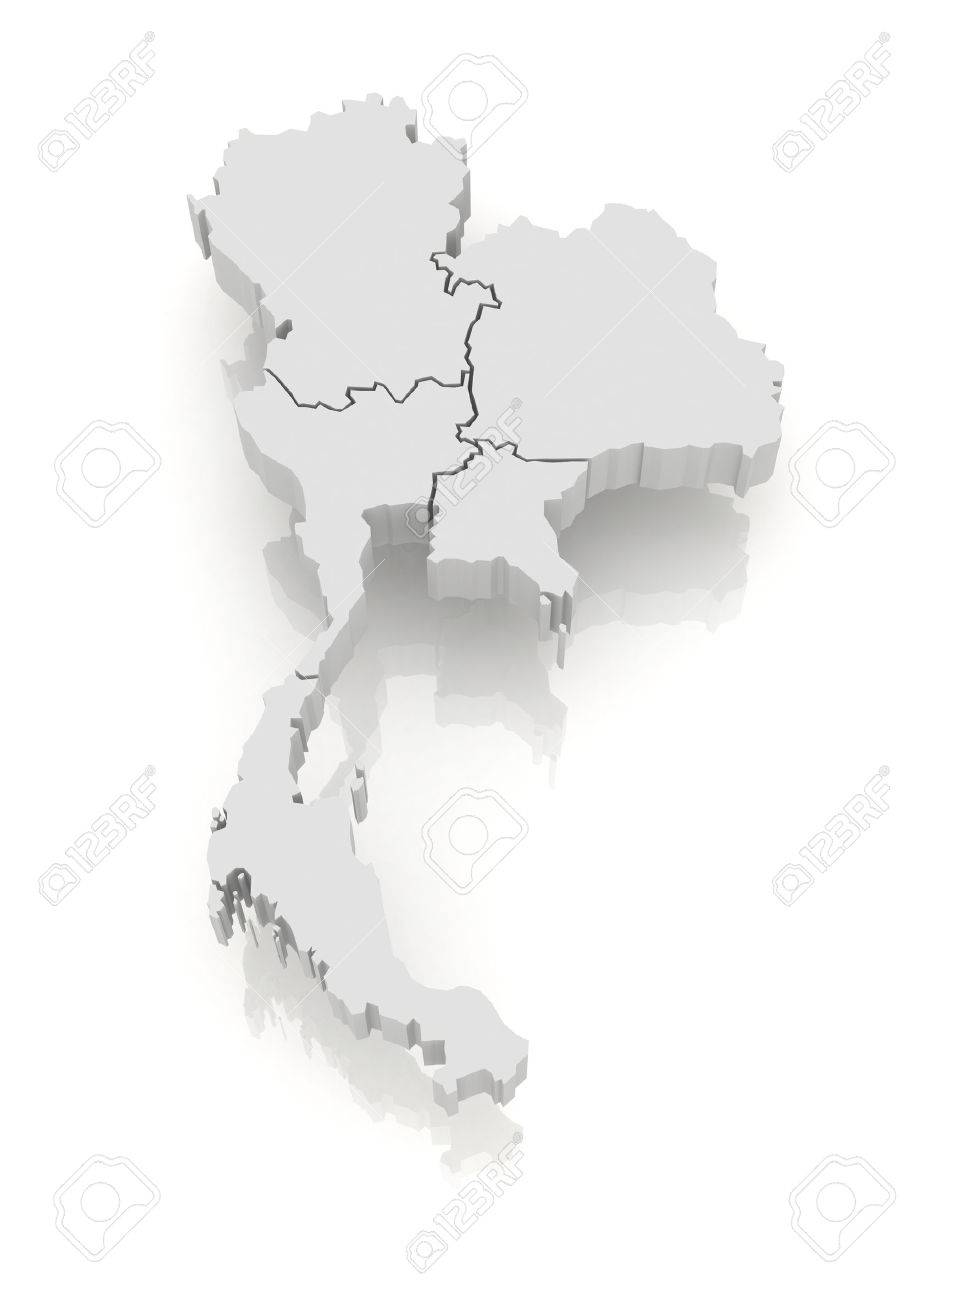 Thailand Map Free Vector Art 2669 Free Downloads Map Of Thailand